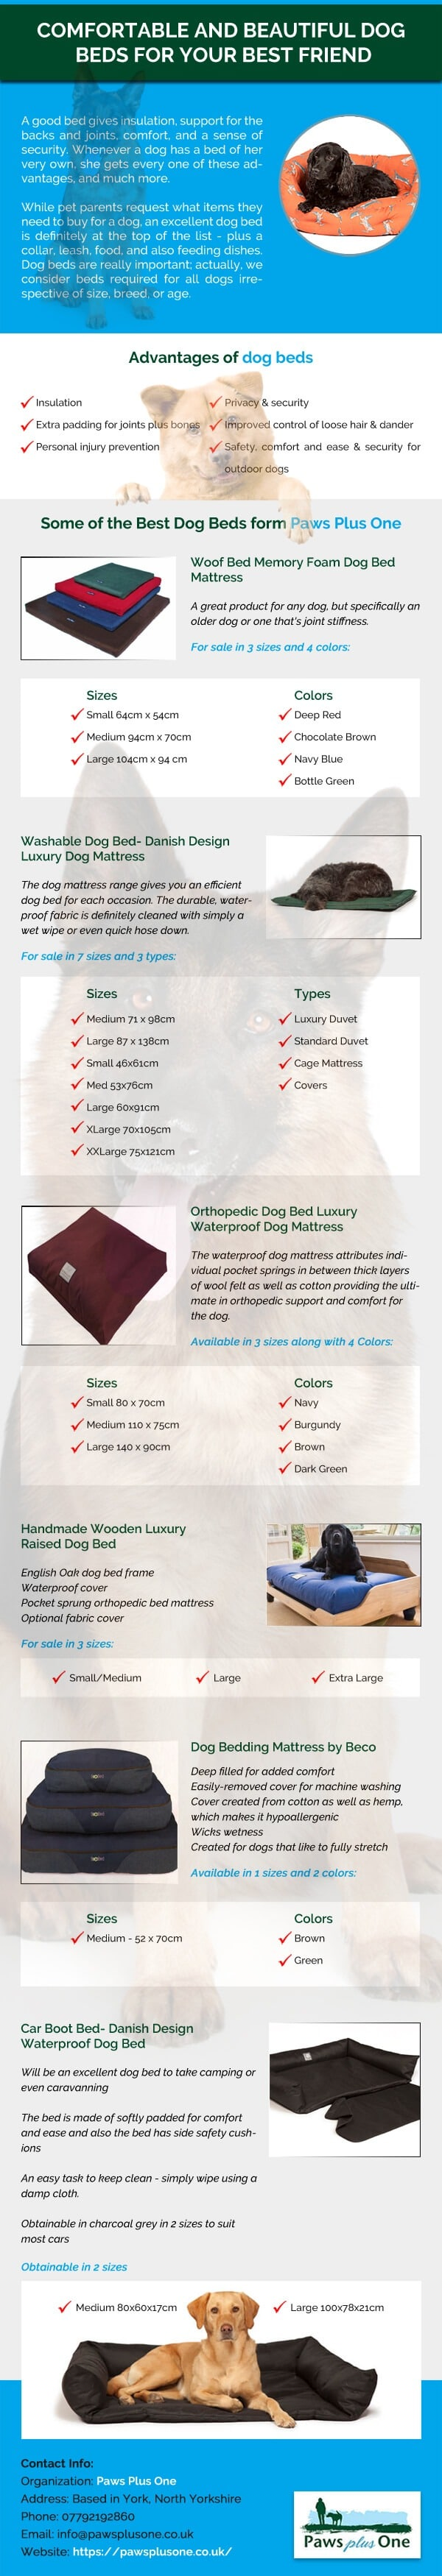 Comfortable and Beautiful Dog Beds